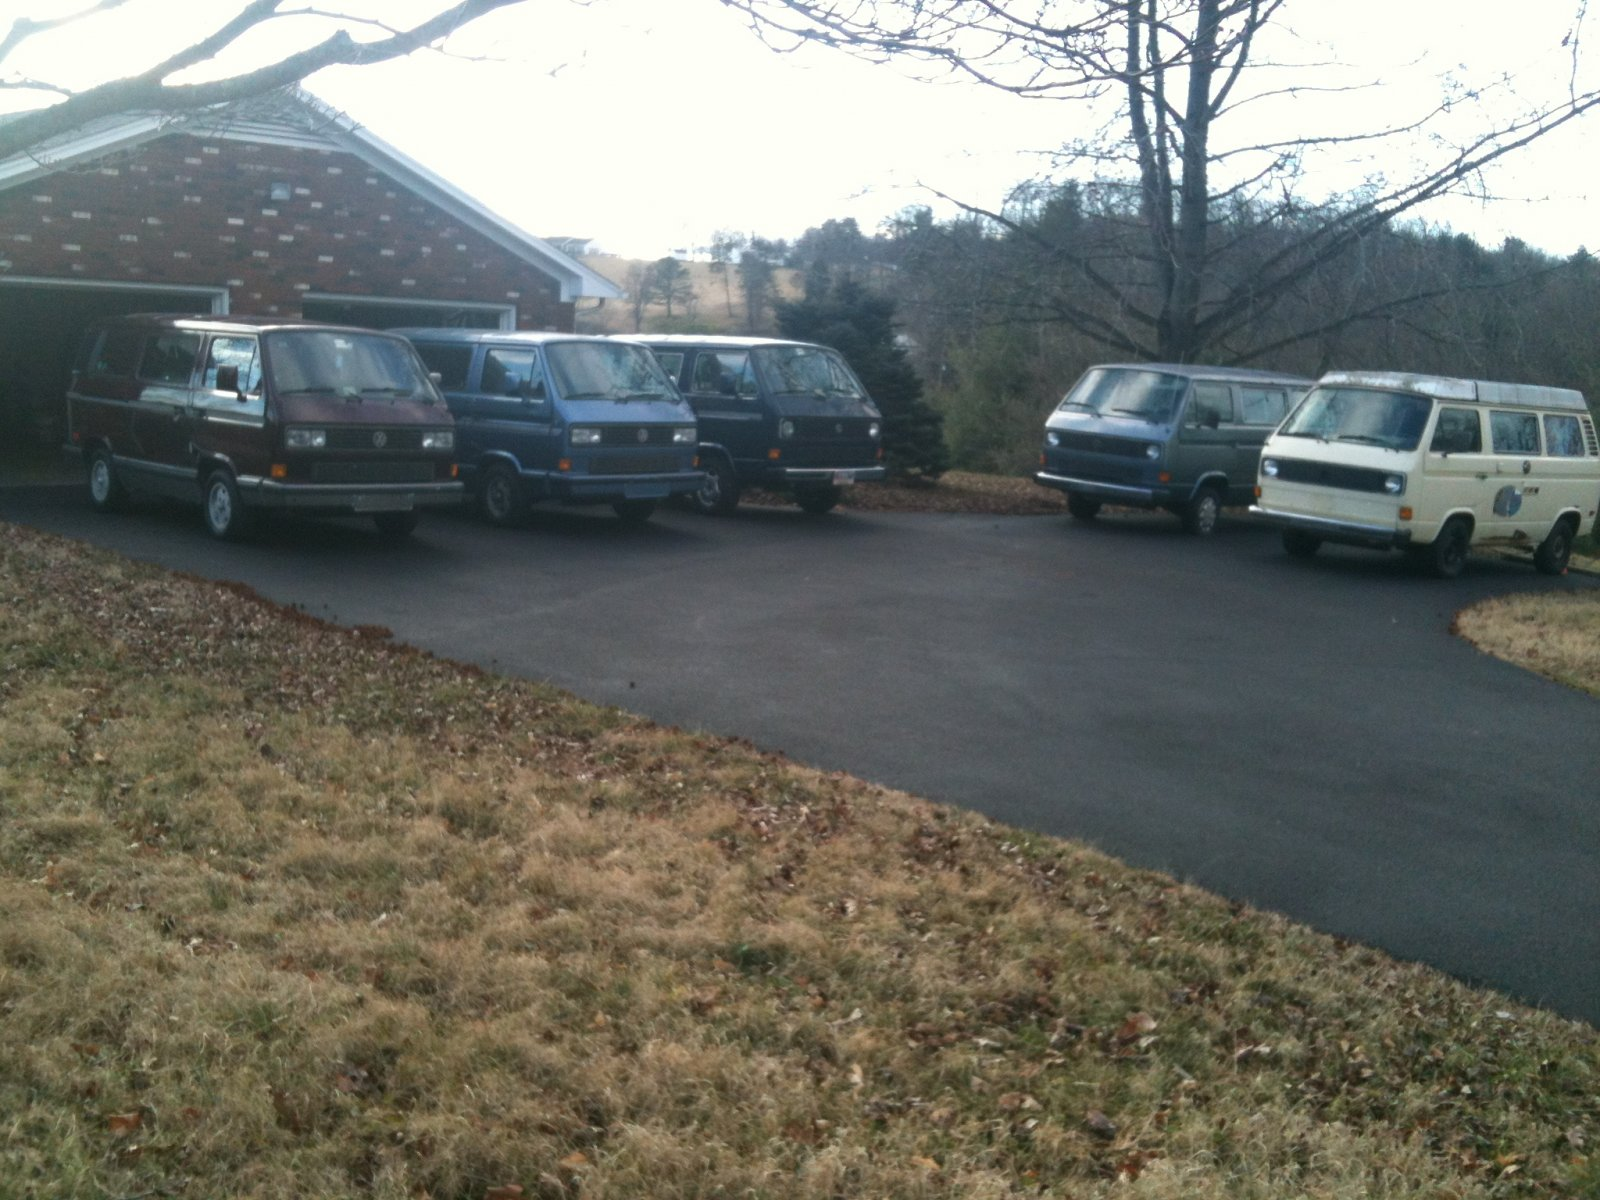 Click image for larger version  Name:VW Vanagon_Stable.jpg Views:24 Size:302.8 KB ID:75481